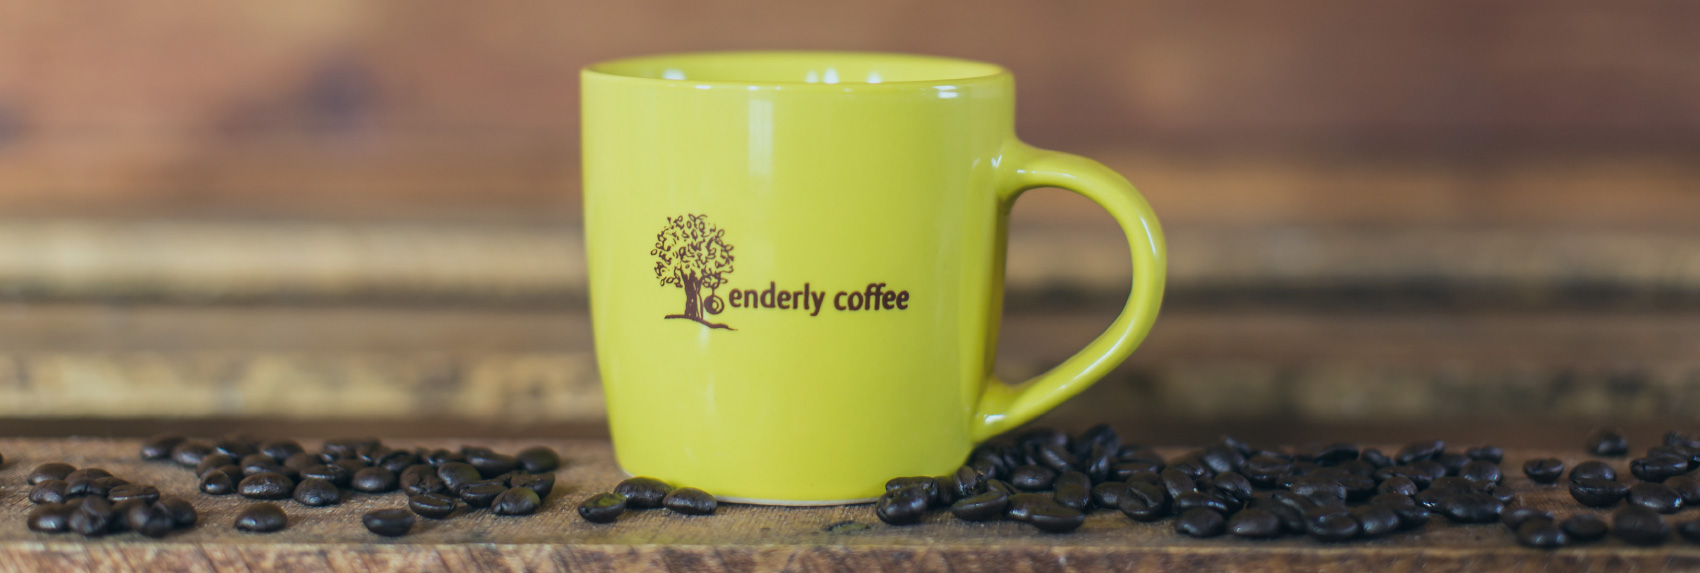 Torrent10 and Enderly Coffee